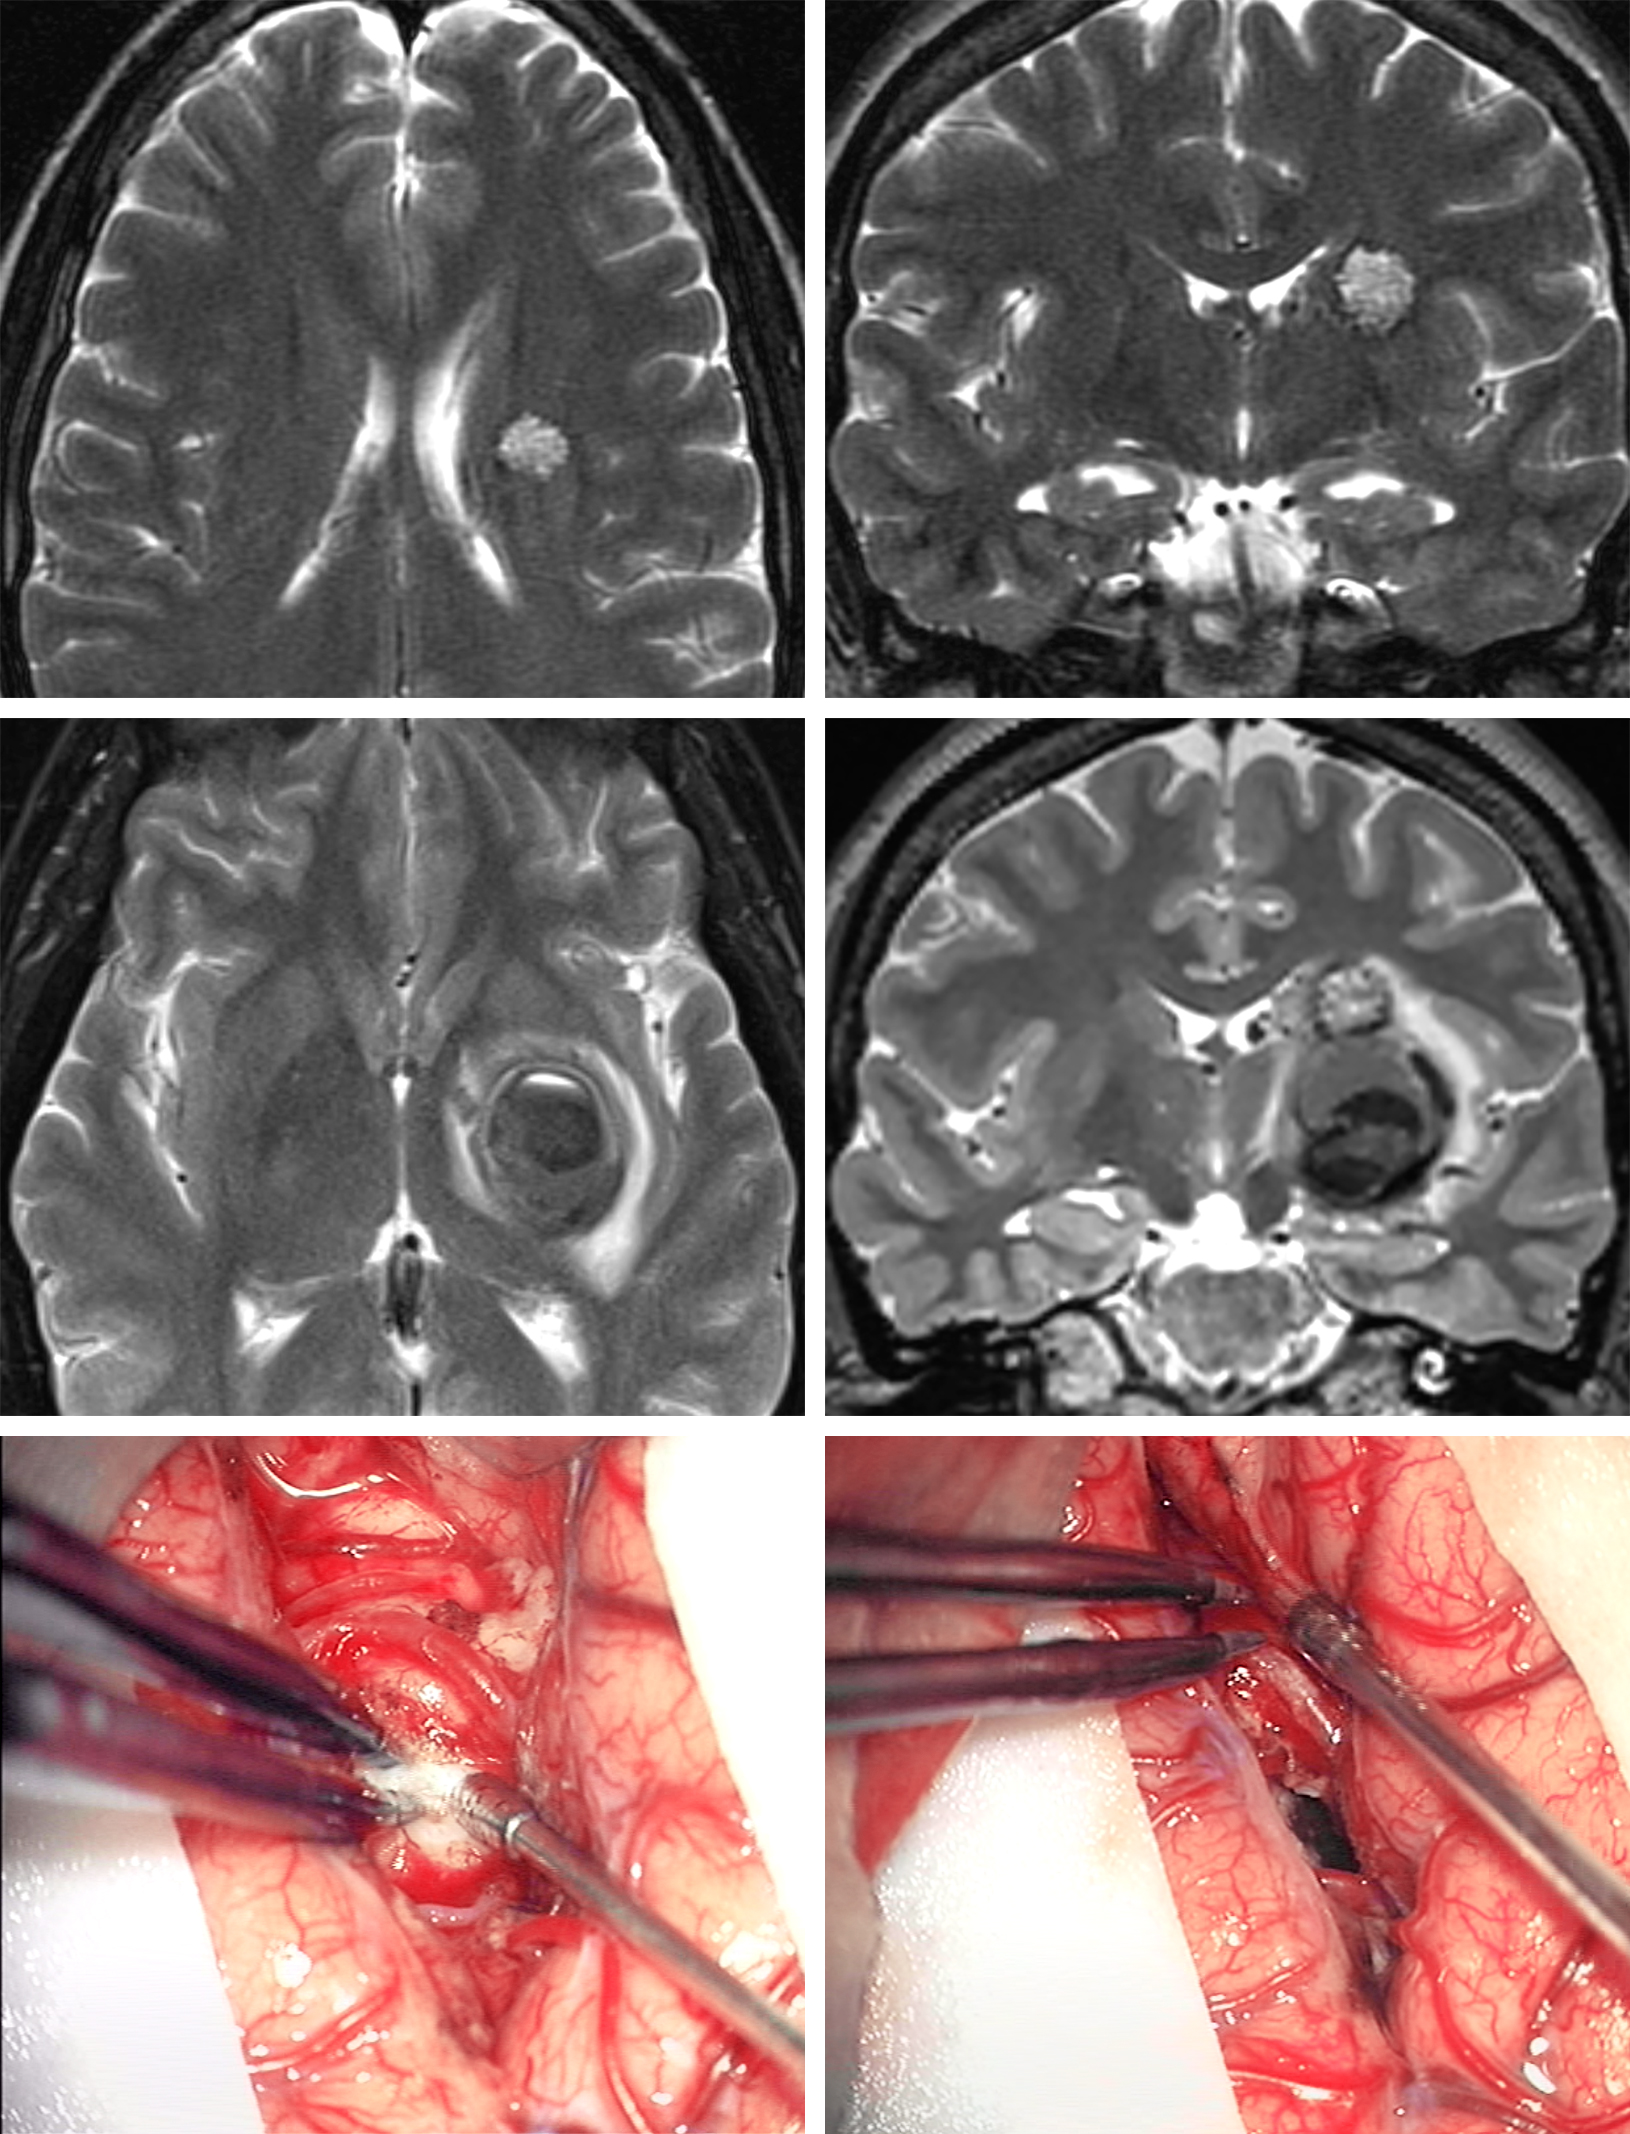 Figure 1: A young woman presented with headaches and was diagnosed with a relatively small periventricular CM without acute extracapsular hemorrhage on magnetic resonance (MR) imaging (upper photos). Because of the asymptomatic nature of the lesion, a lack of acute hemorrhage on imaging, and its deep location, the malformation was managed expectantly. She returned one year later with another hemorrhagic event that left her with a hemiparesis (middle row of images). She subsequently underwent a posterior transsylvian transinsular resection (lower row of images).